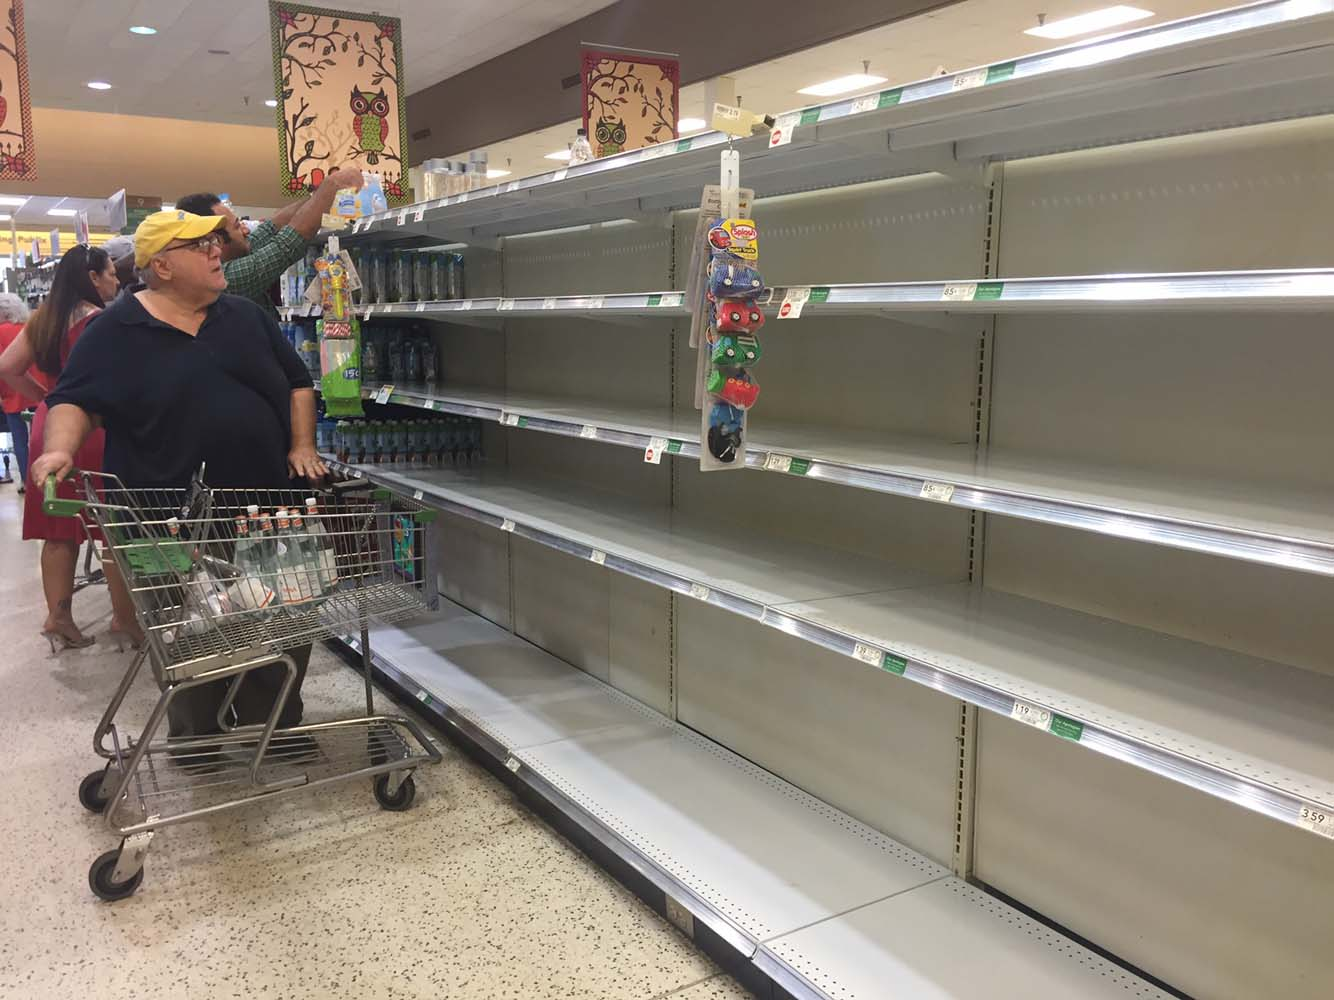 Shoppers pass by empty shelves as they buy supplies ahead of the arrival of hurricane Matthew in Daytona Beach, on October 5, 2016. Weakened but still dangerous, Hurricane Matthew churned toward the Bahamas en route to an already jittery Florida after killing at least nine people in the Caribbean in a maelstrom of wind, mud and water. / AFP PHOTO / Leila MACOR